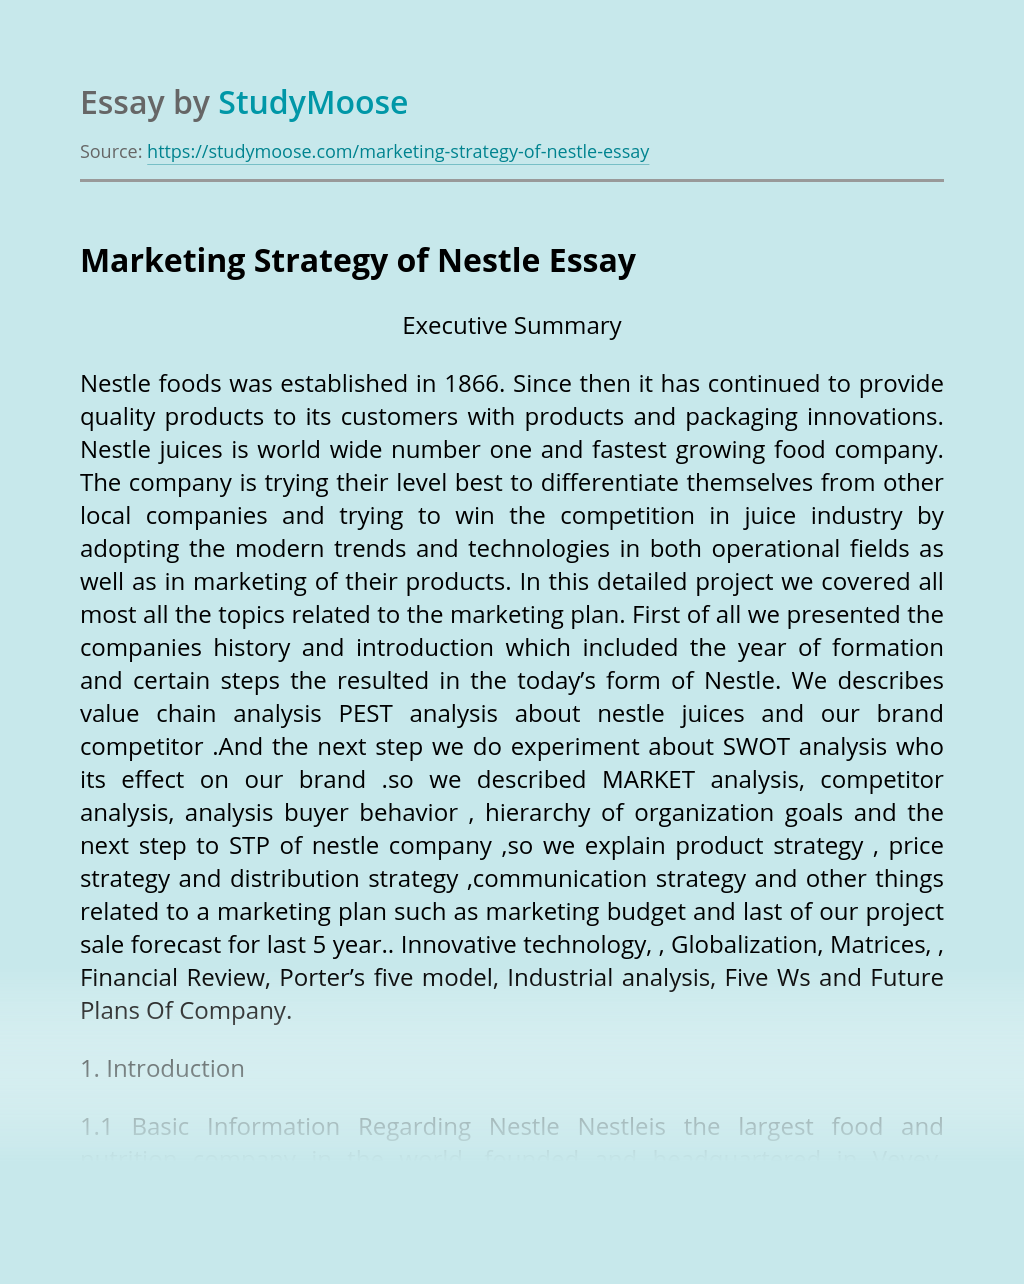 Marketing Strategy of Nestle